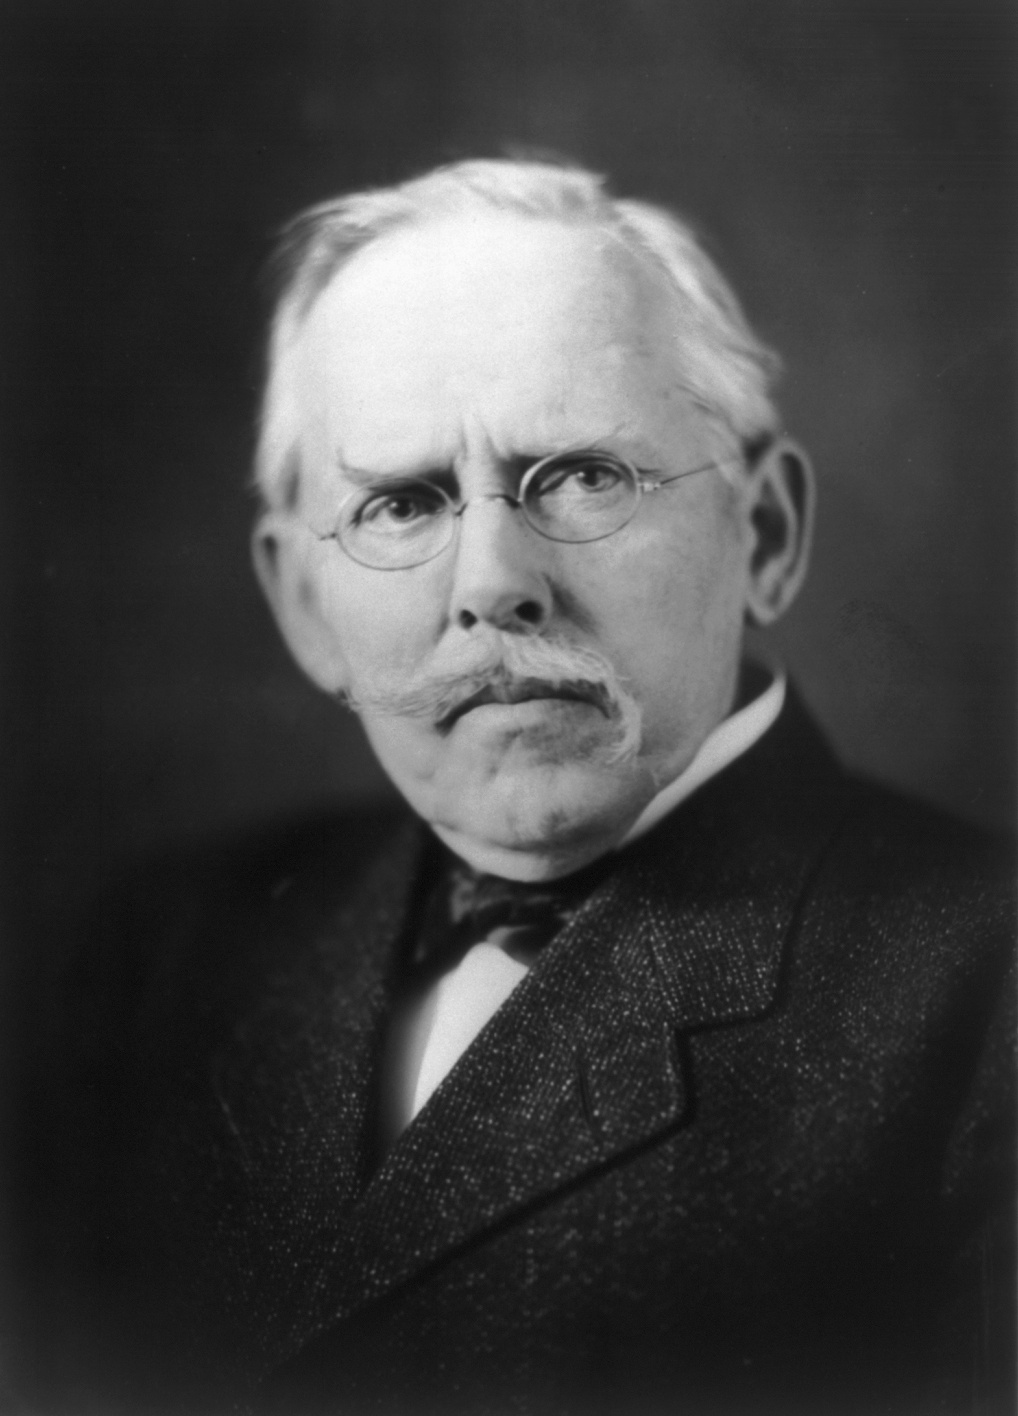 Image of Jacob August Riis from Wikidata